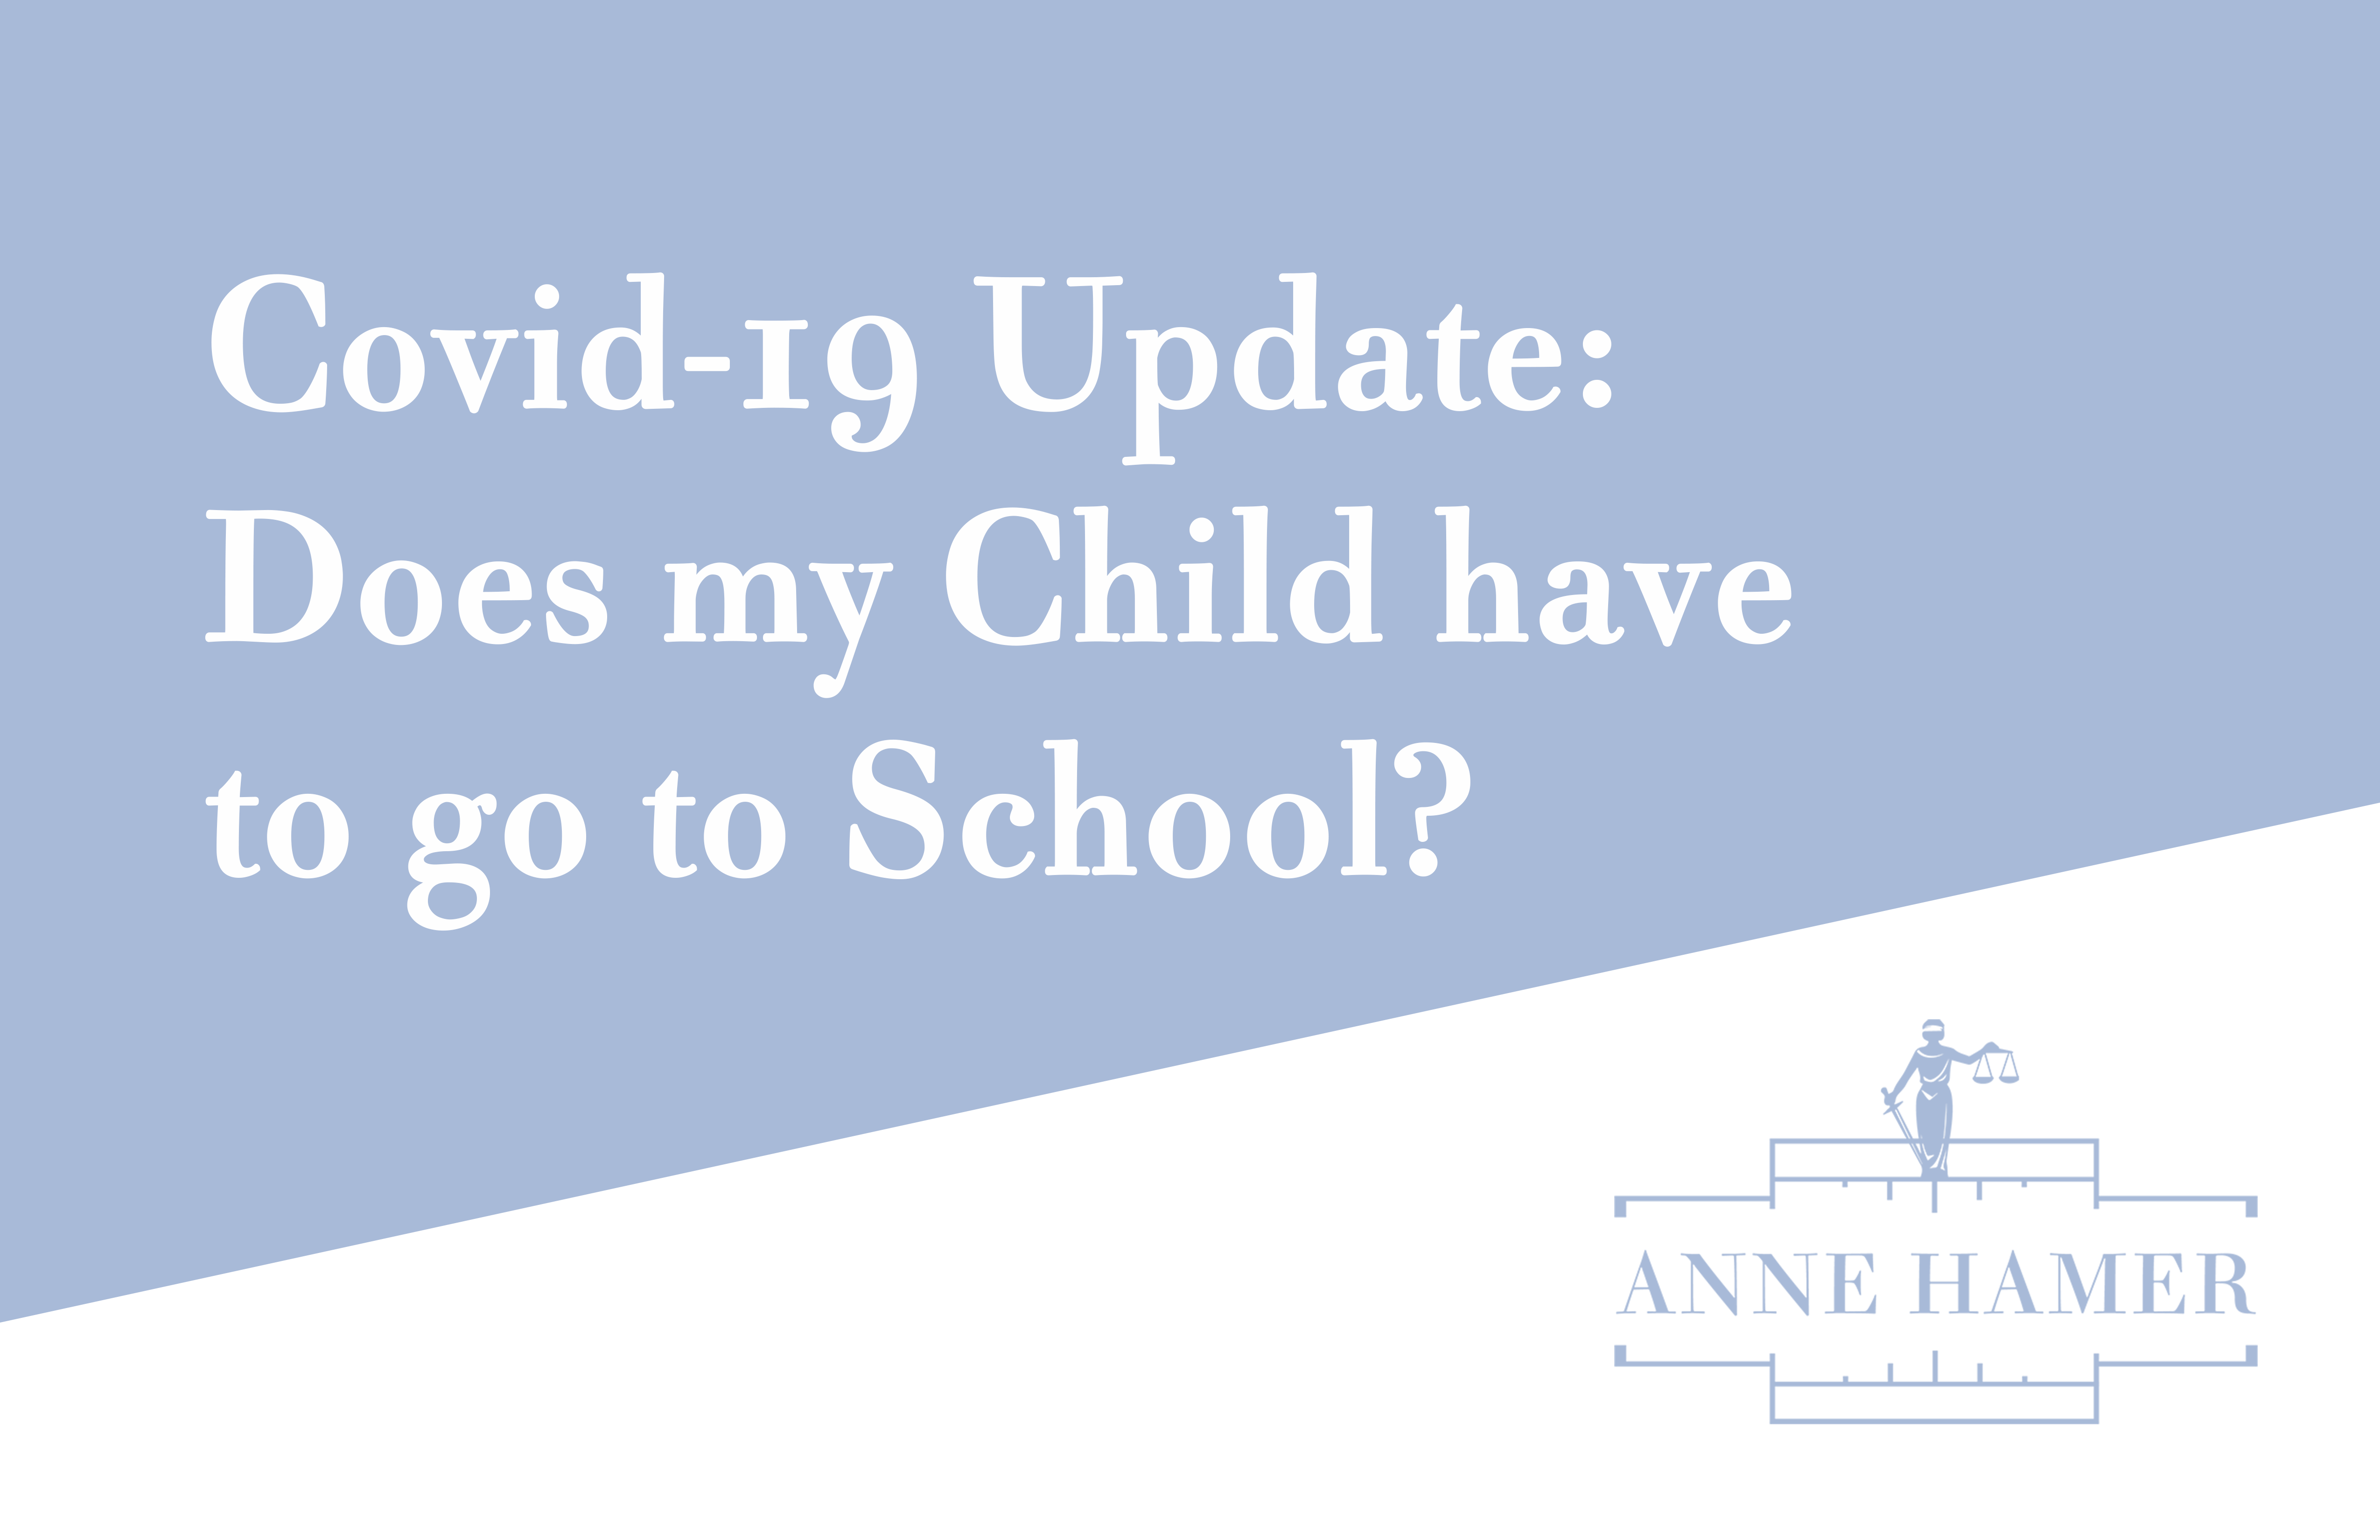 Covid-19 Update: Does my Child have to go to School?